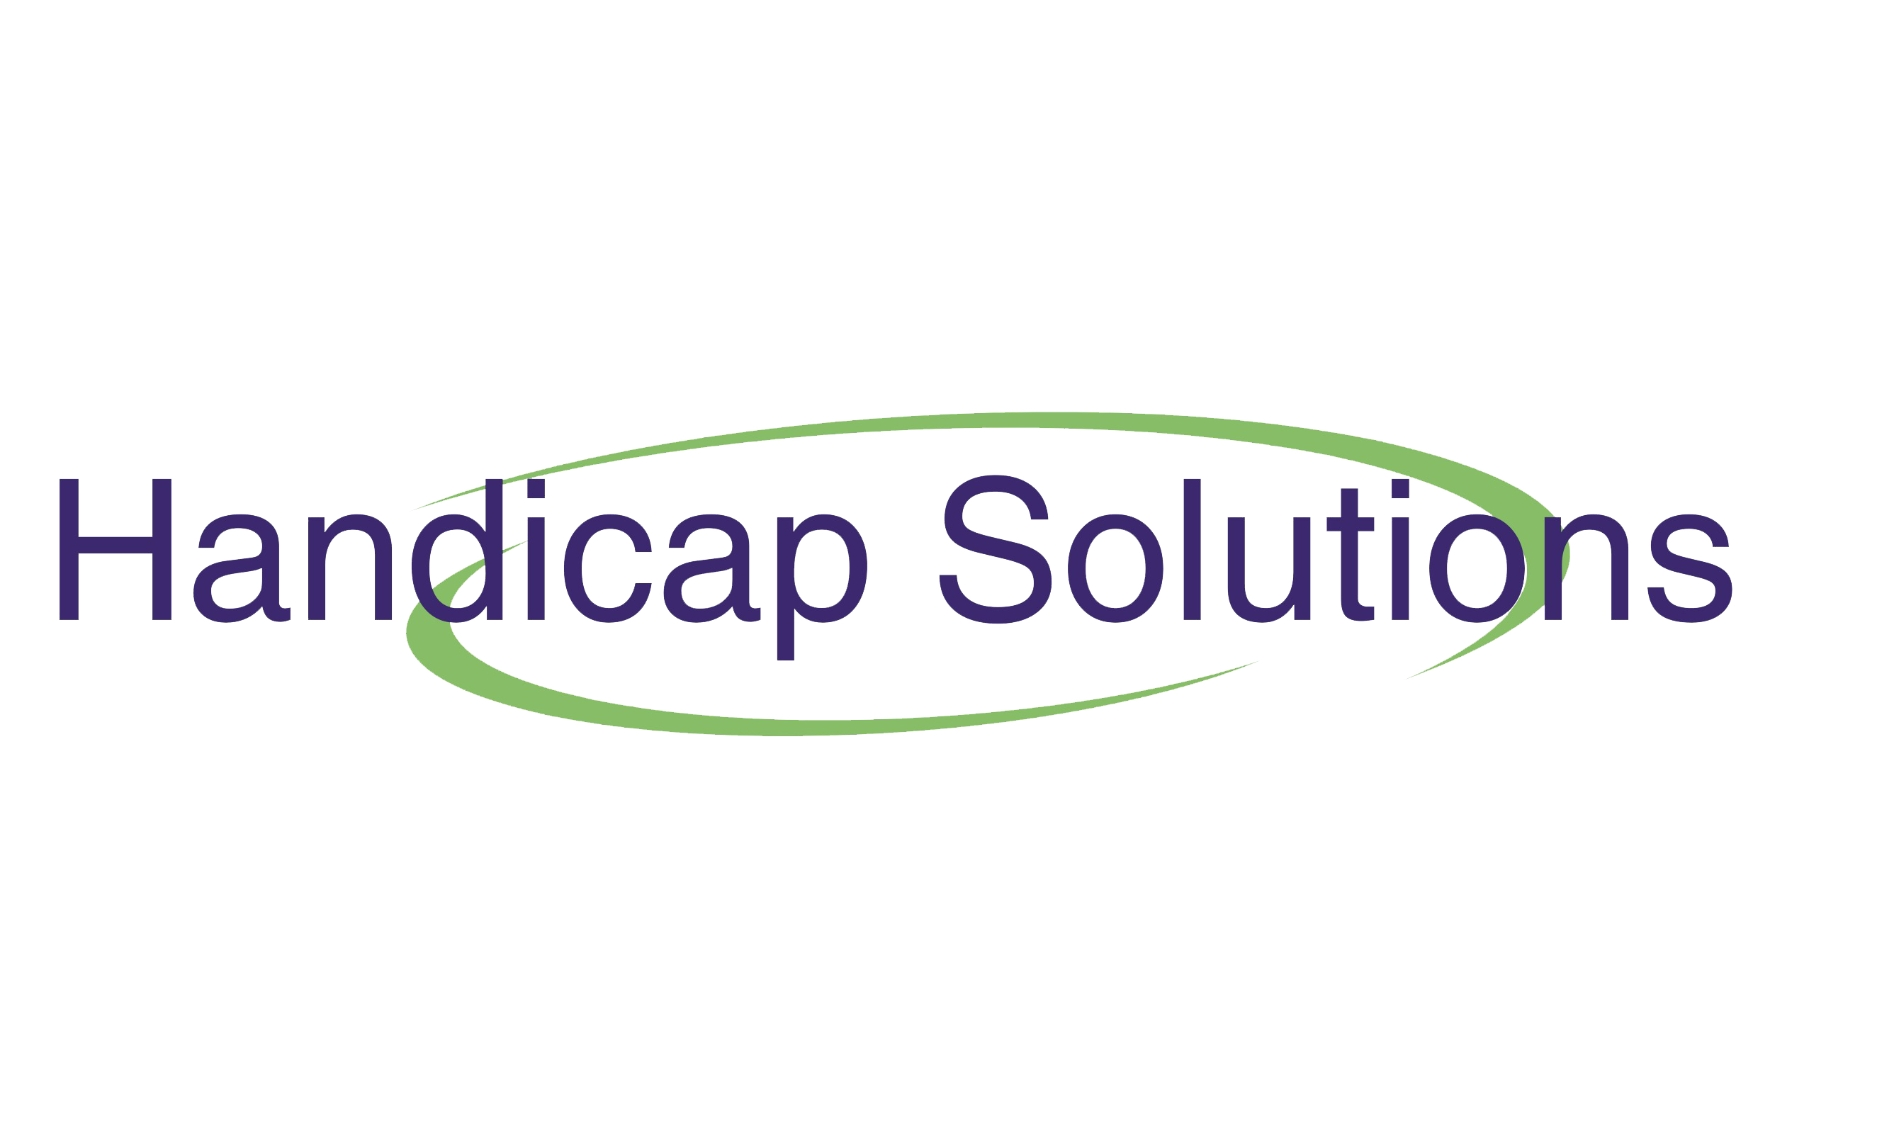 Handicap solutions